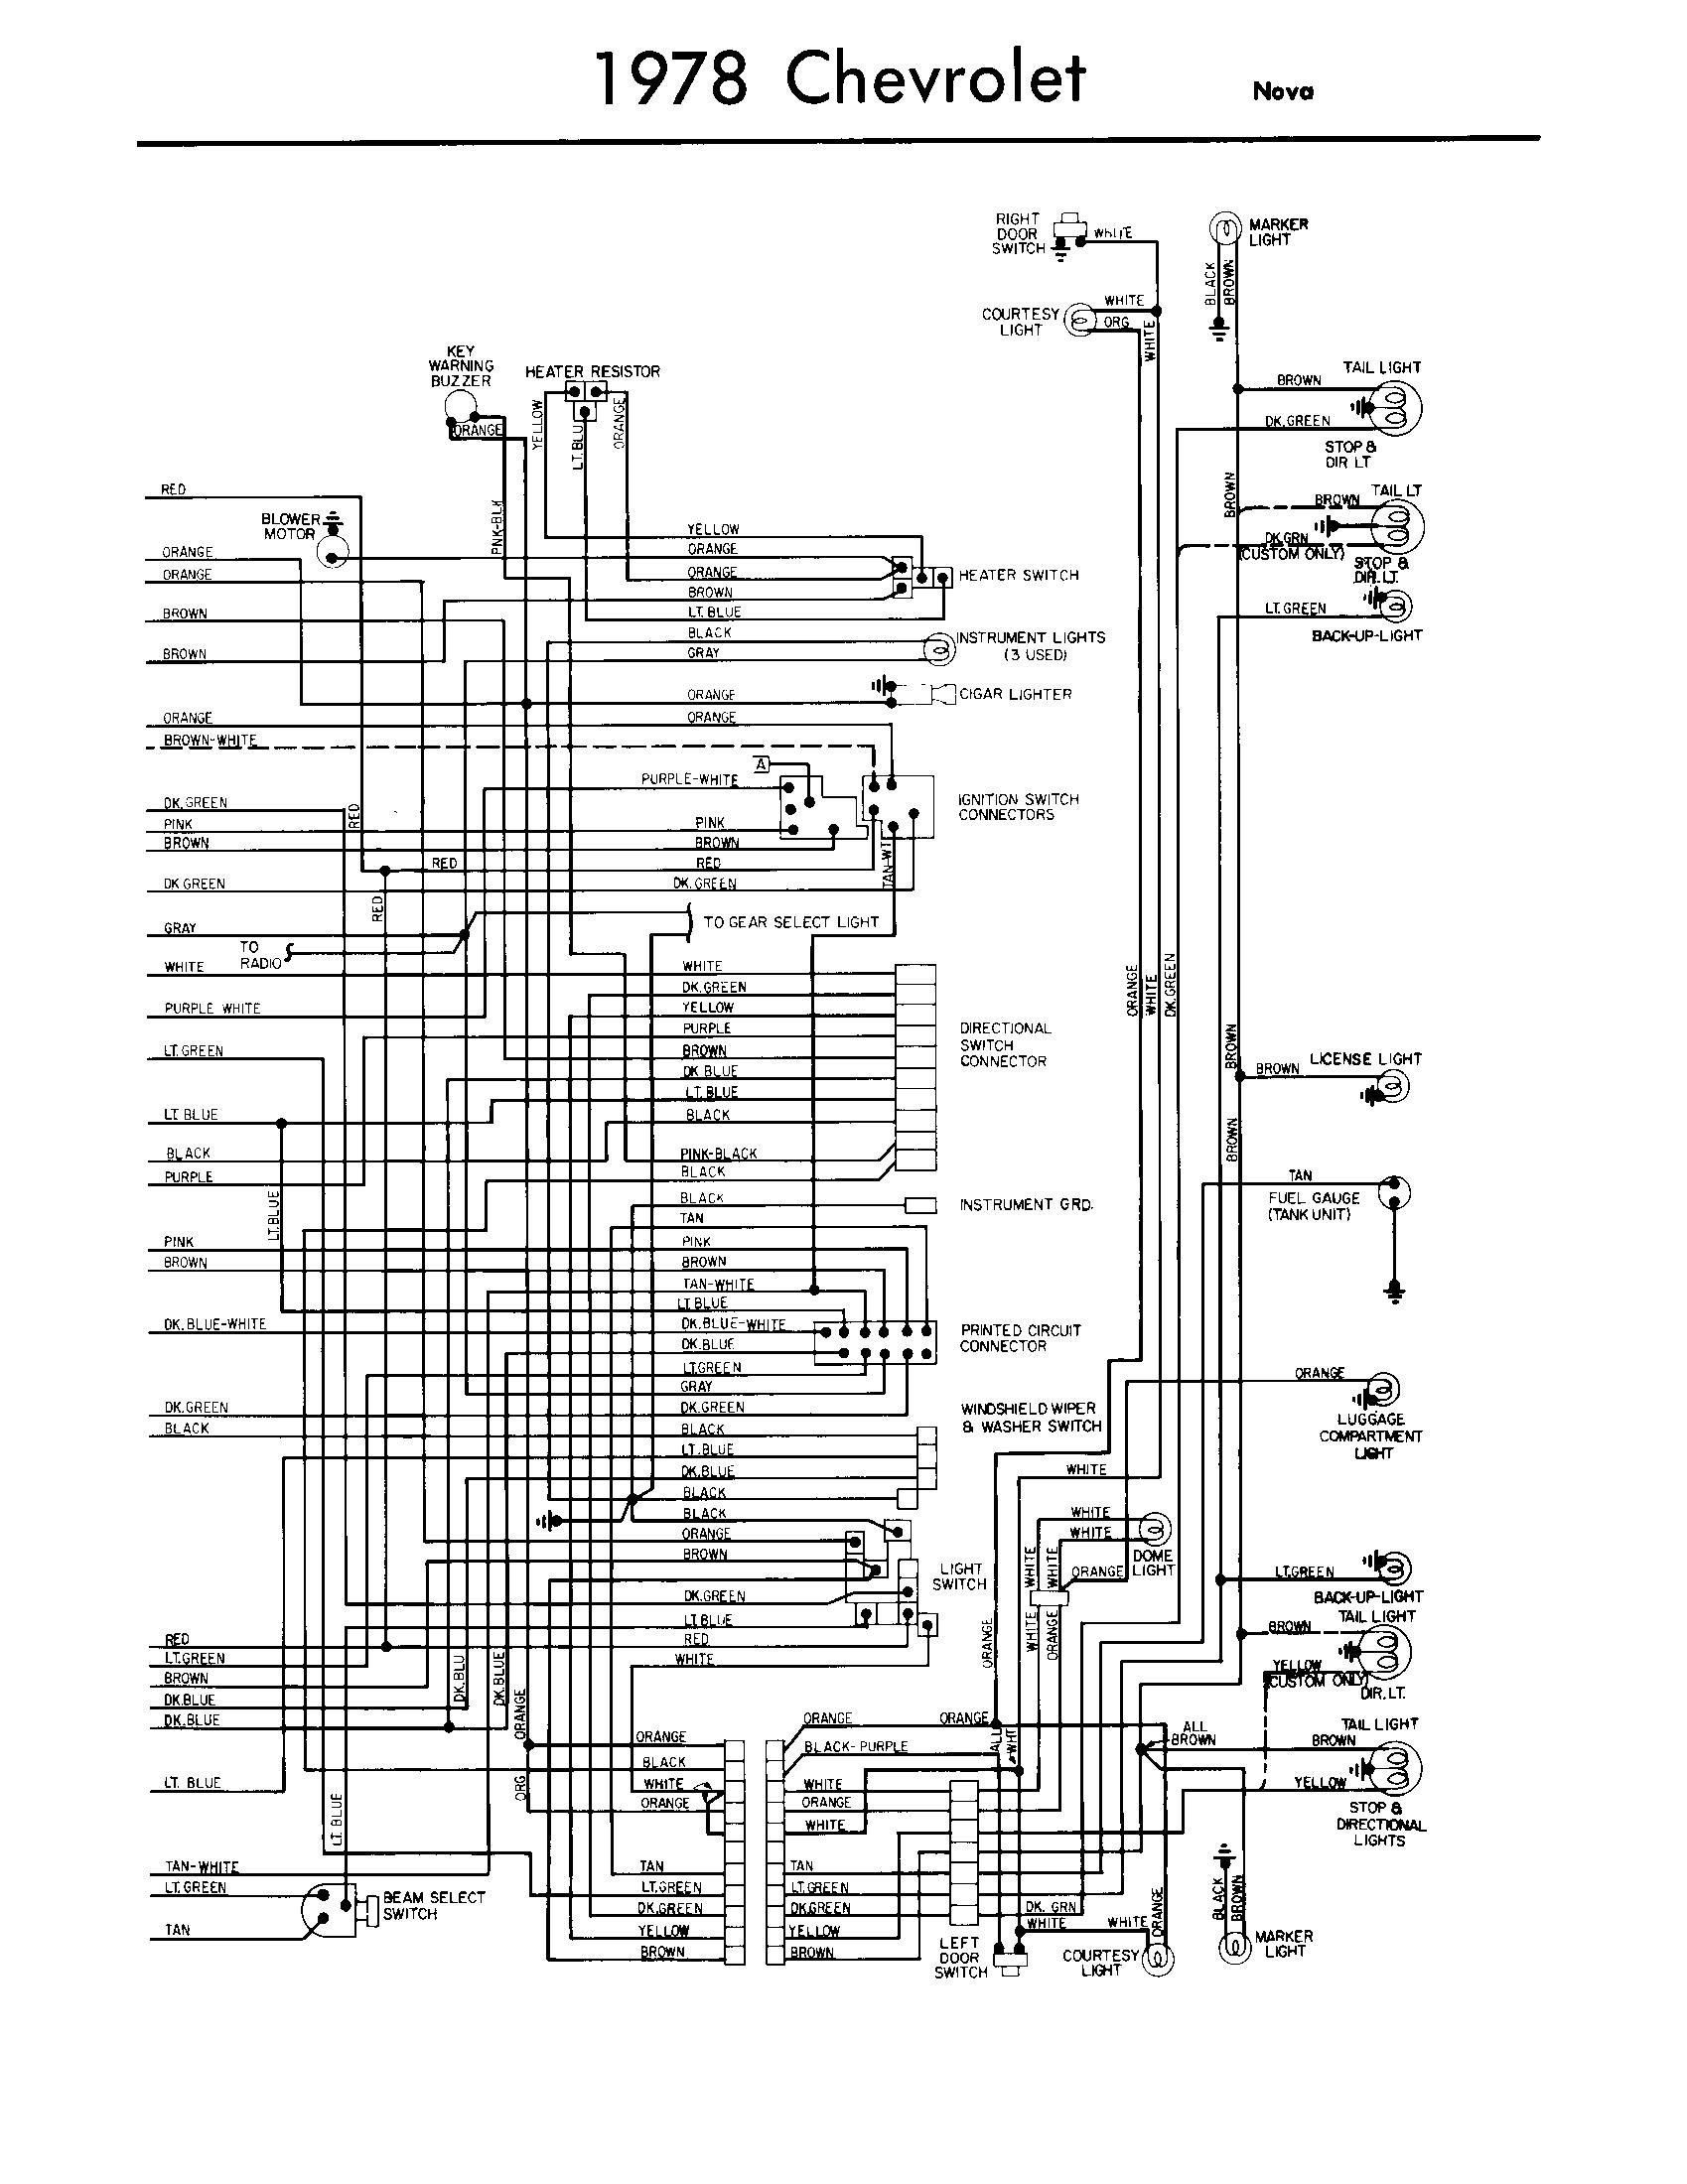 small resolution of 1979 chevy corvette wiring schematic php free download mesmerizing 1979 chevy nova wiring diagram